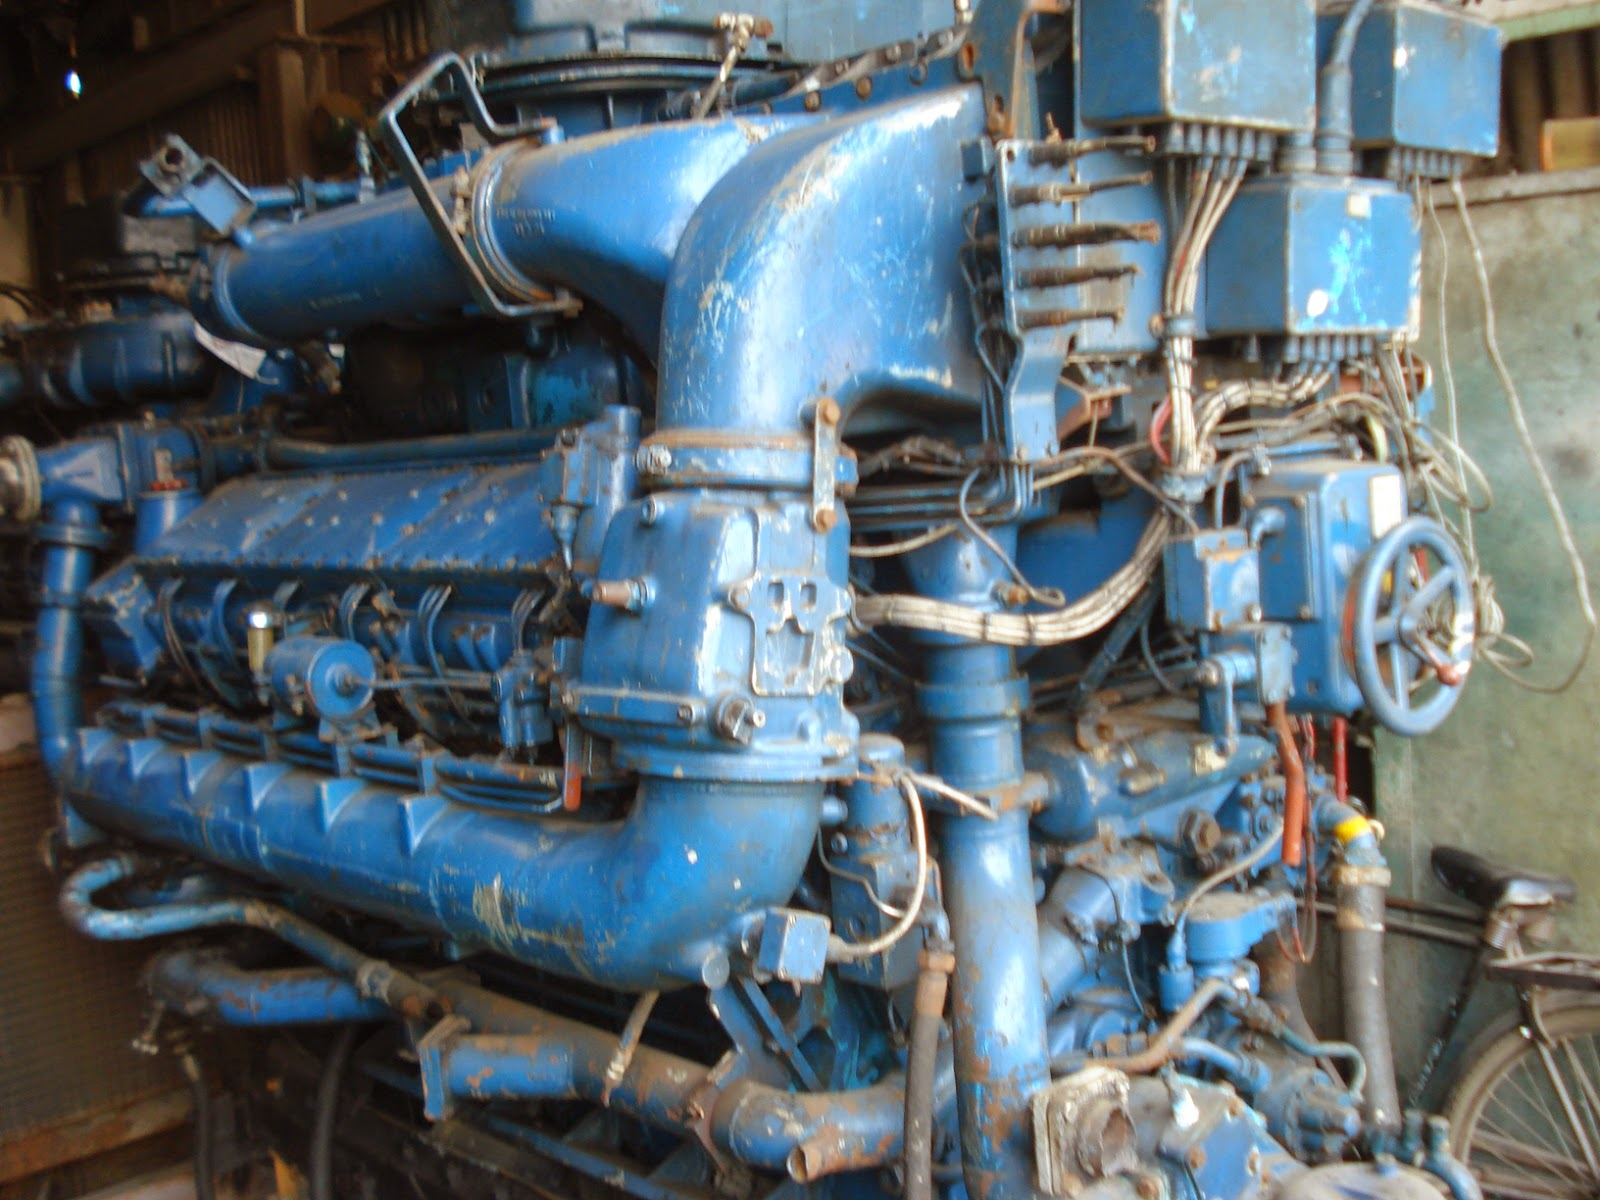 MTU marine engines, MTU propulsion engines, rolls royce